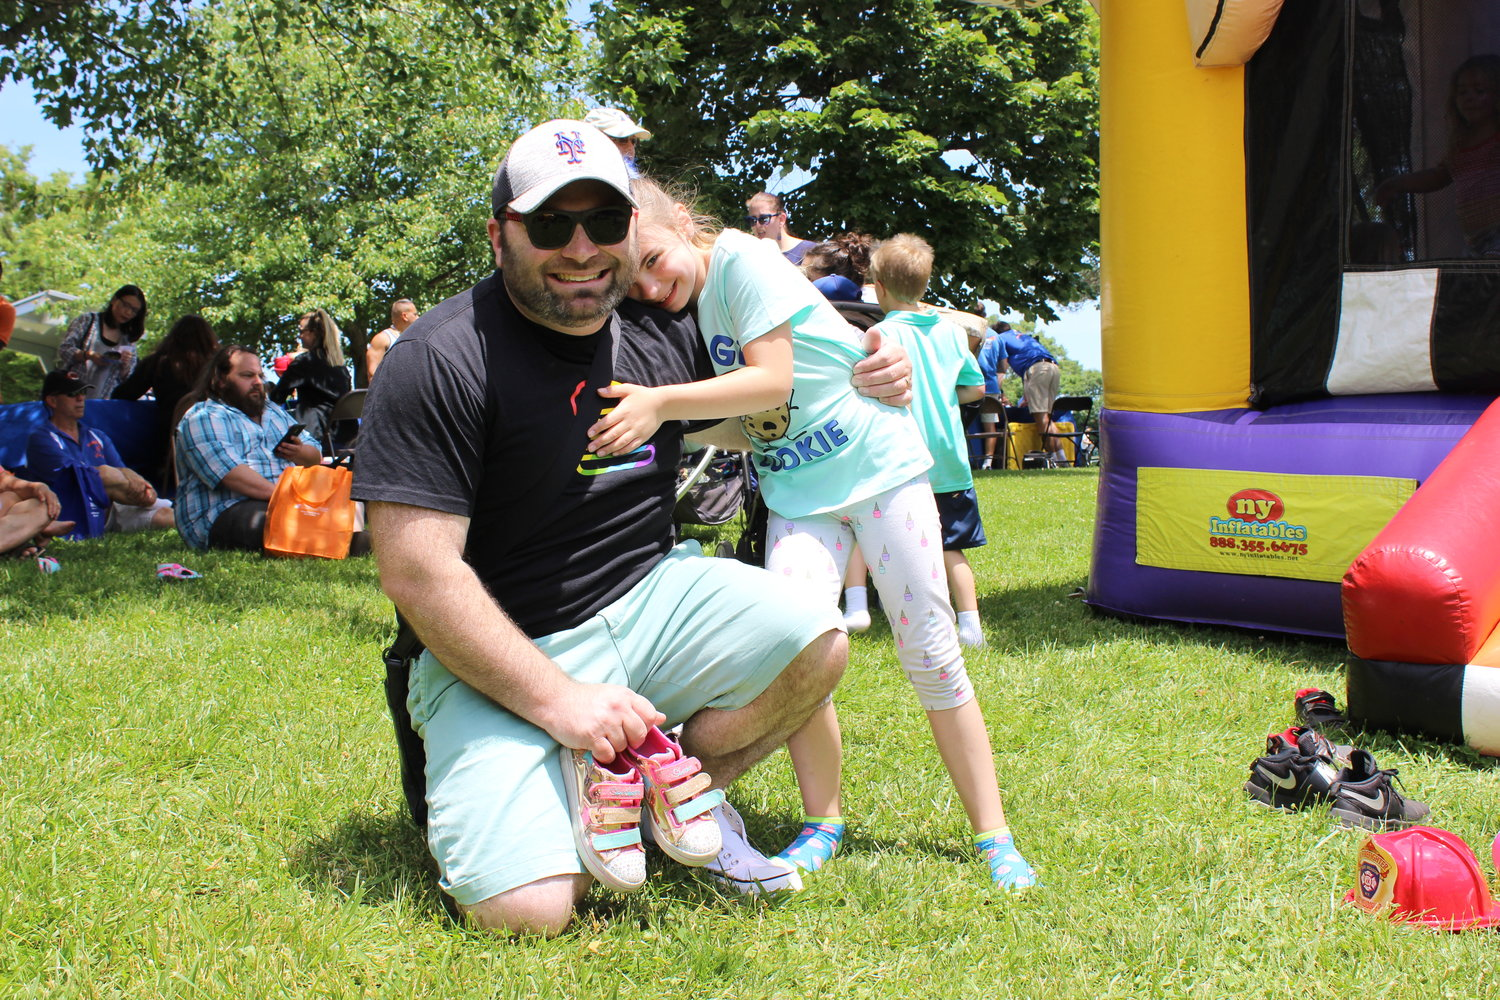 Matthew Jurgens took his daughter Madeline, 7, to the festival, where she enjoyed the bounce house.